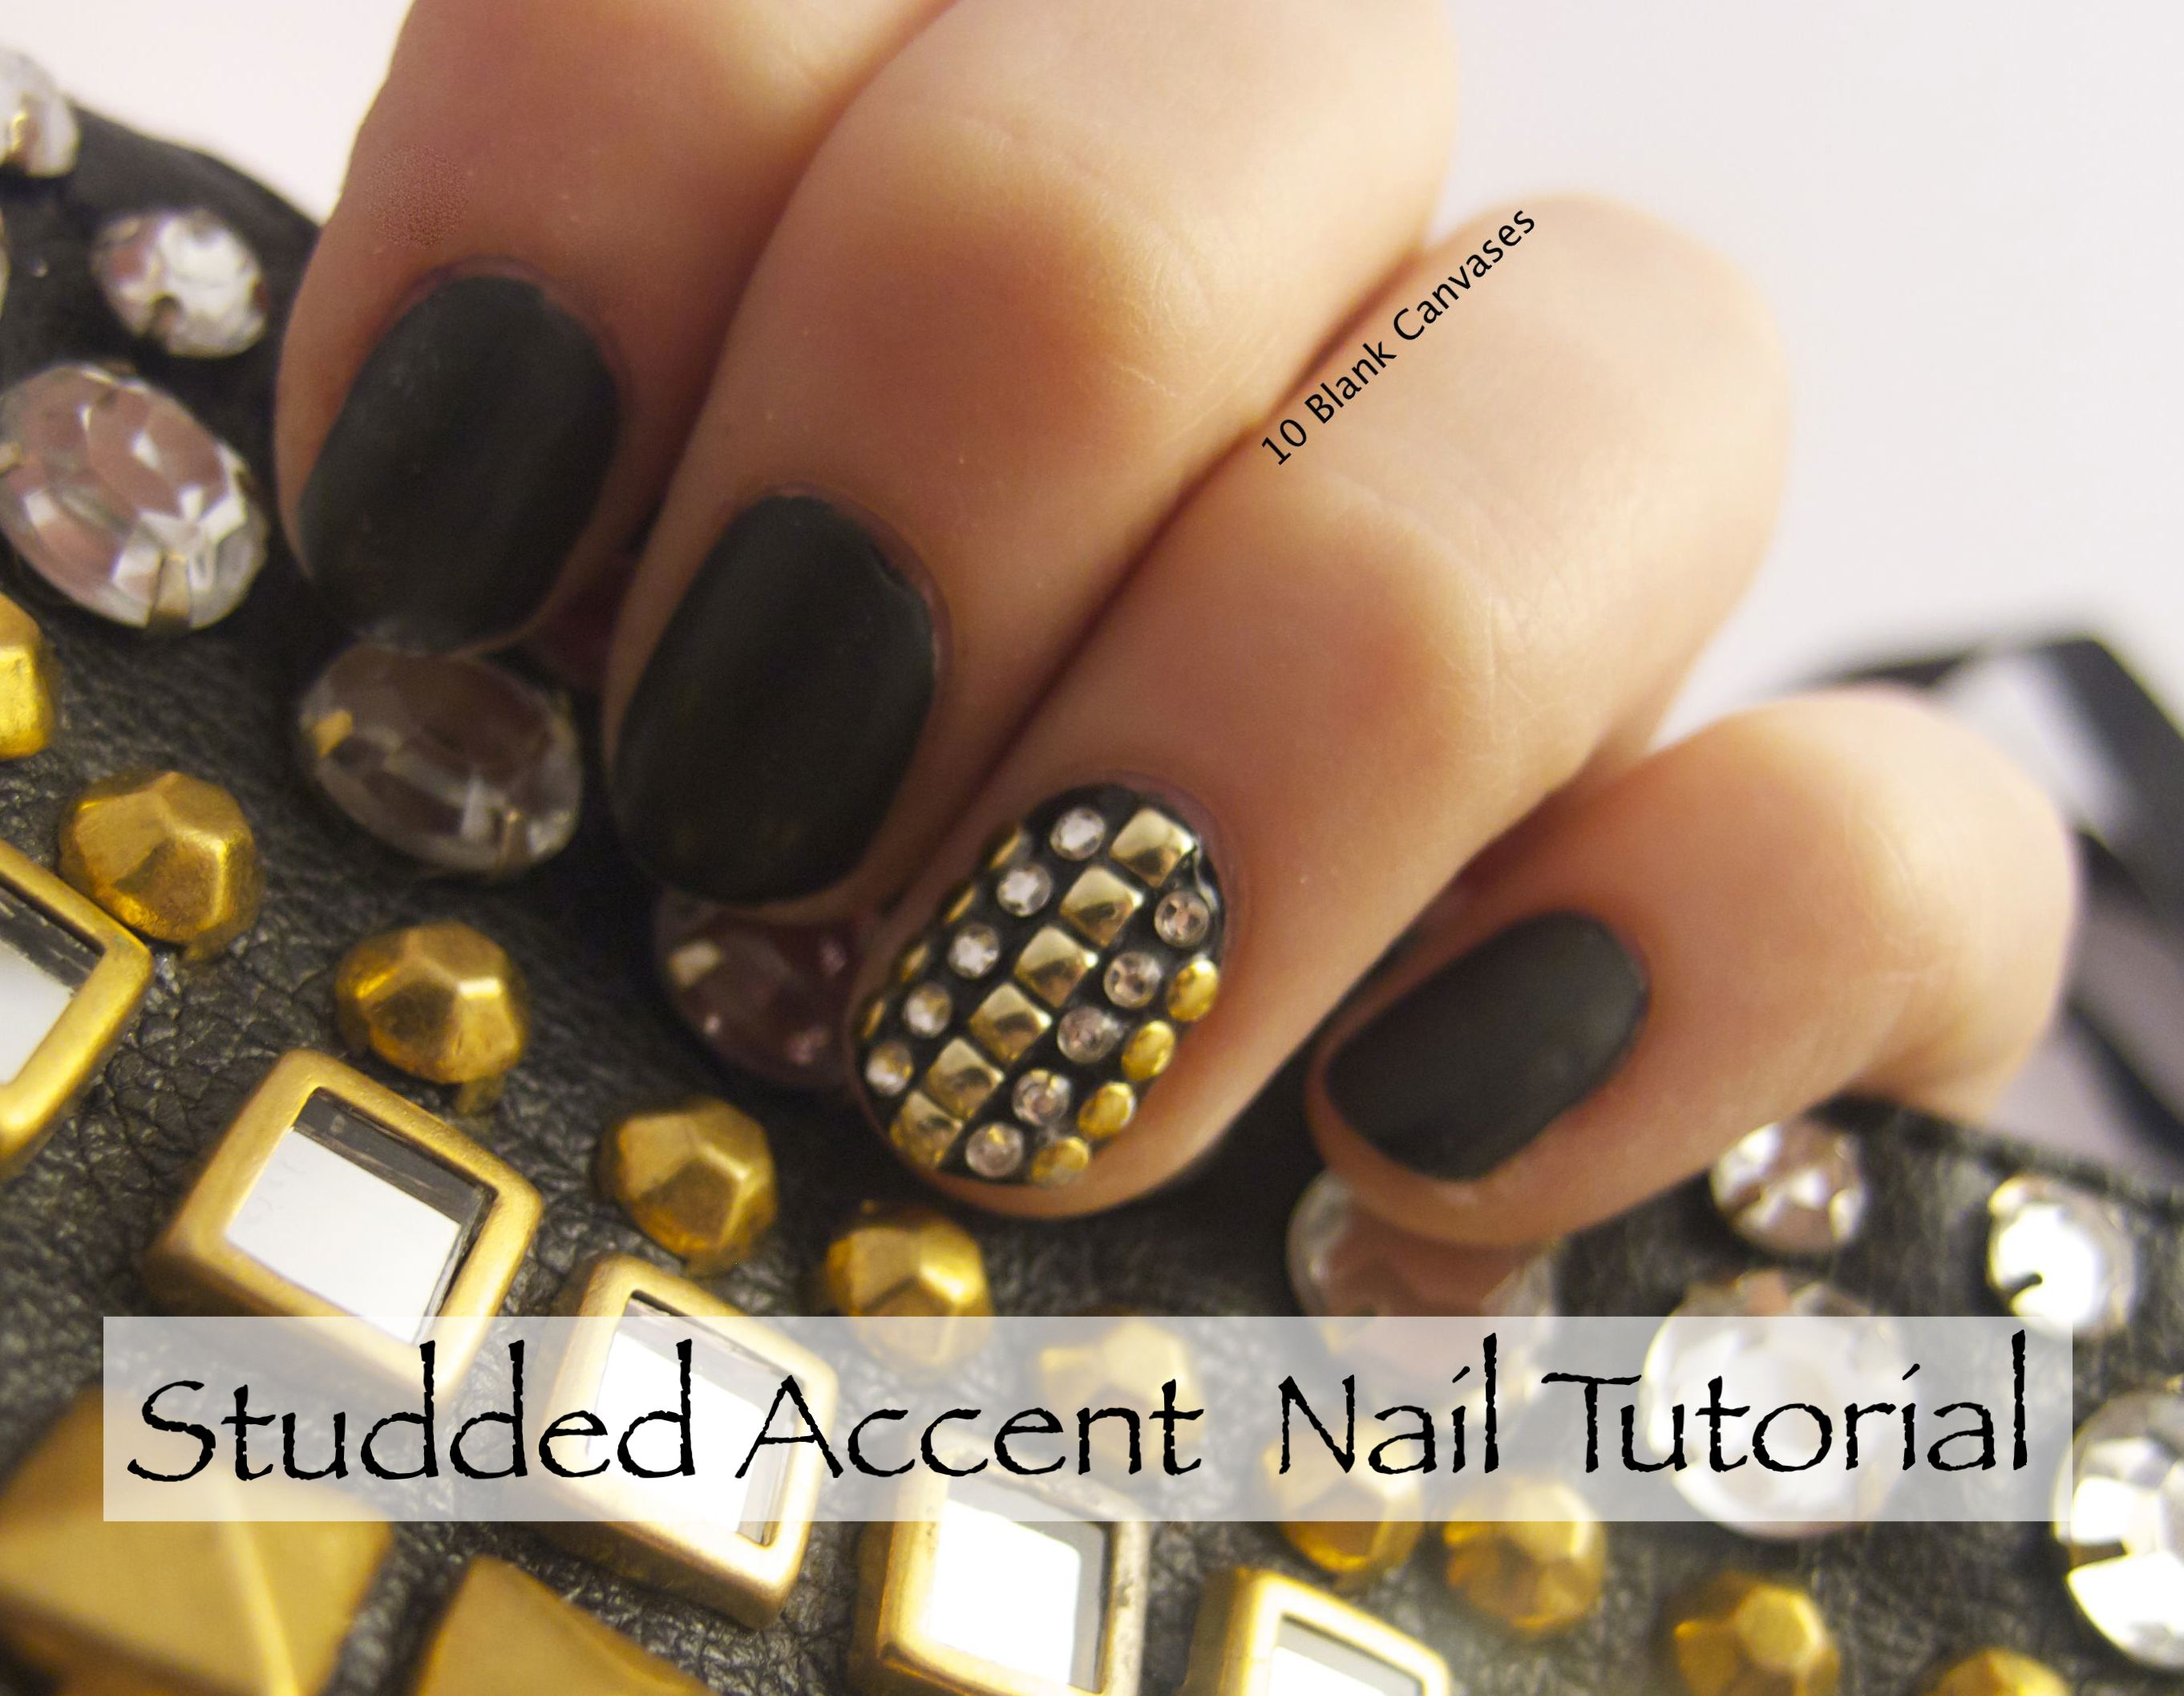 Studded Accent Nail Tutorial